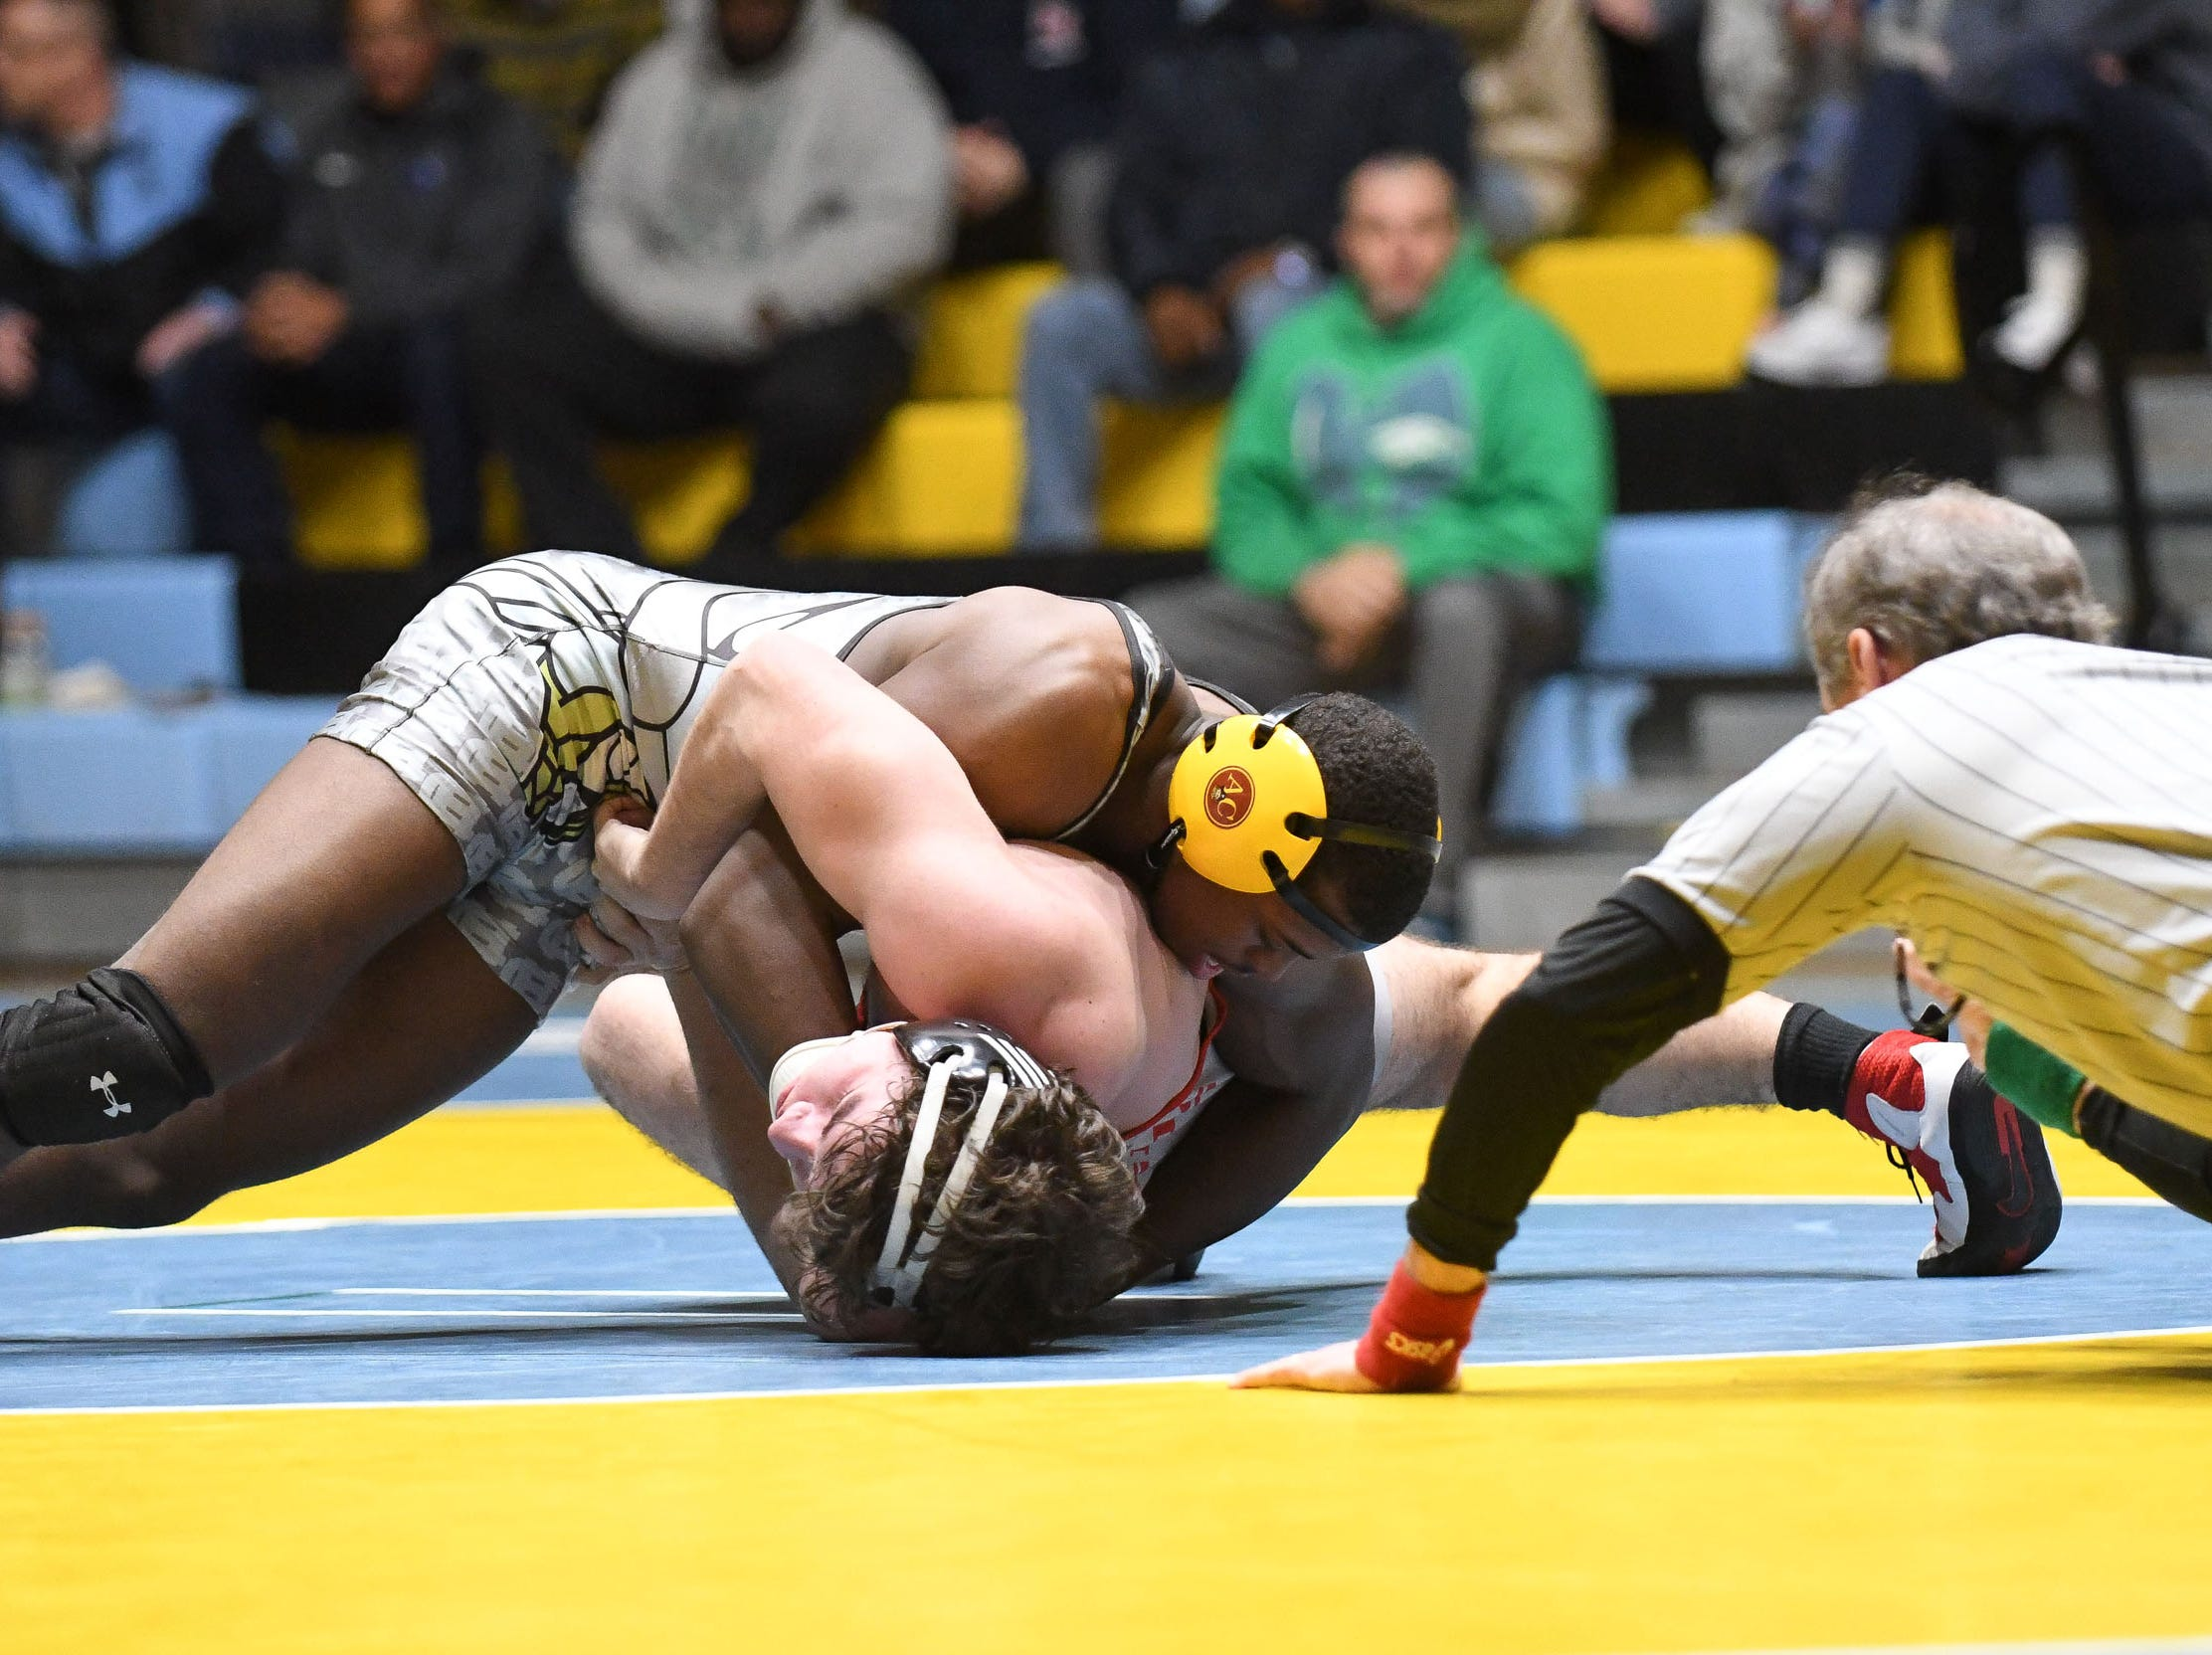 Cape's Roy Jones took on Smyrna's Donald McAlpine during the 170lb weight class on Wednesday, Jan. 10, 2019. Cape won the match 34-33.